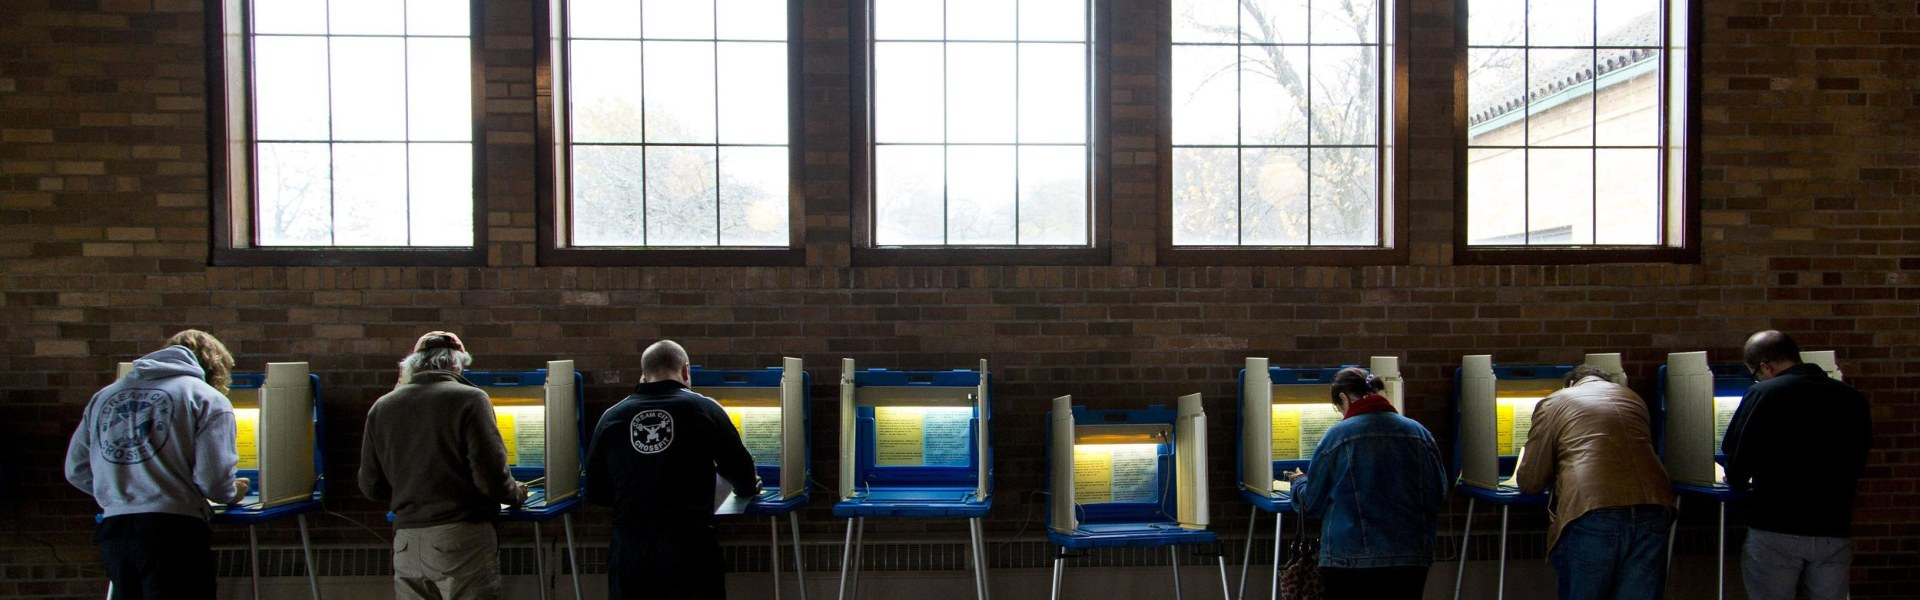 Image: BESTPIX Midterms Elections Held Across The U.S.